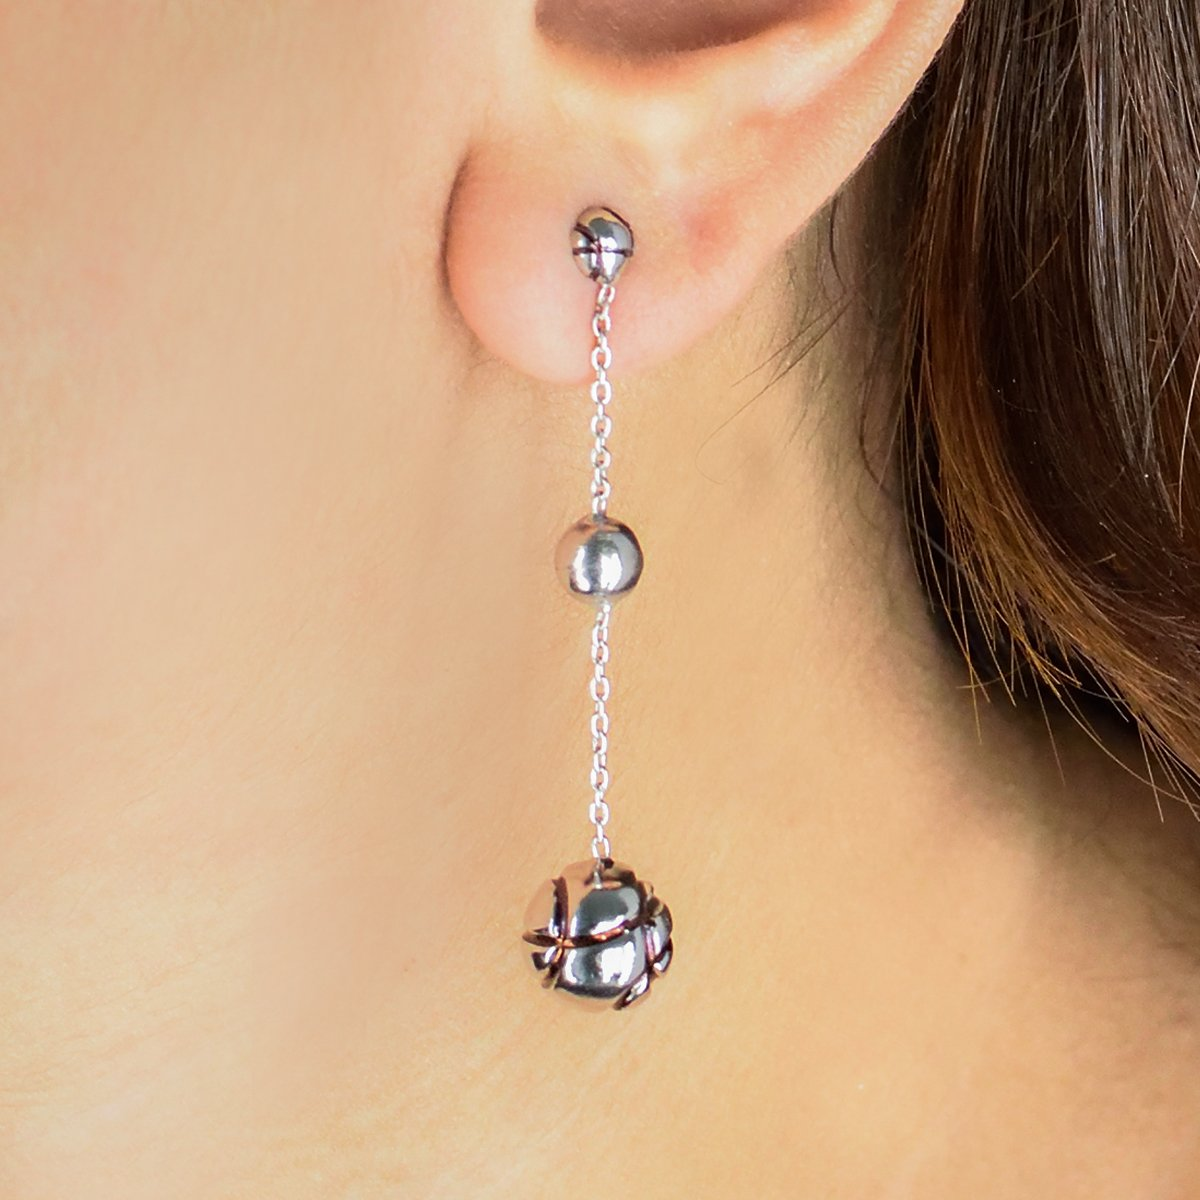 Scintillating Spheres - Long Dangler Drop Earrings - Aliame